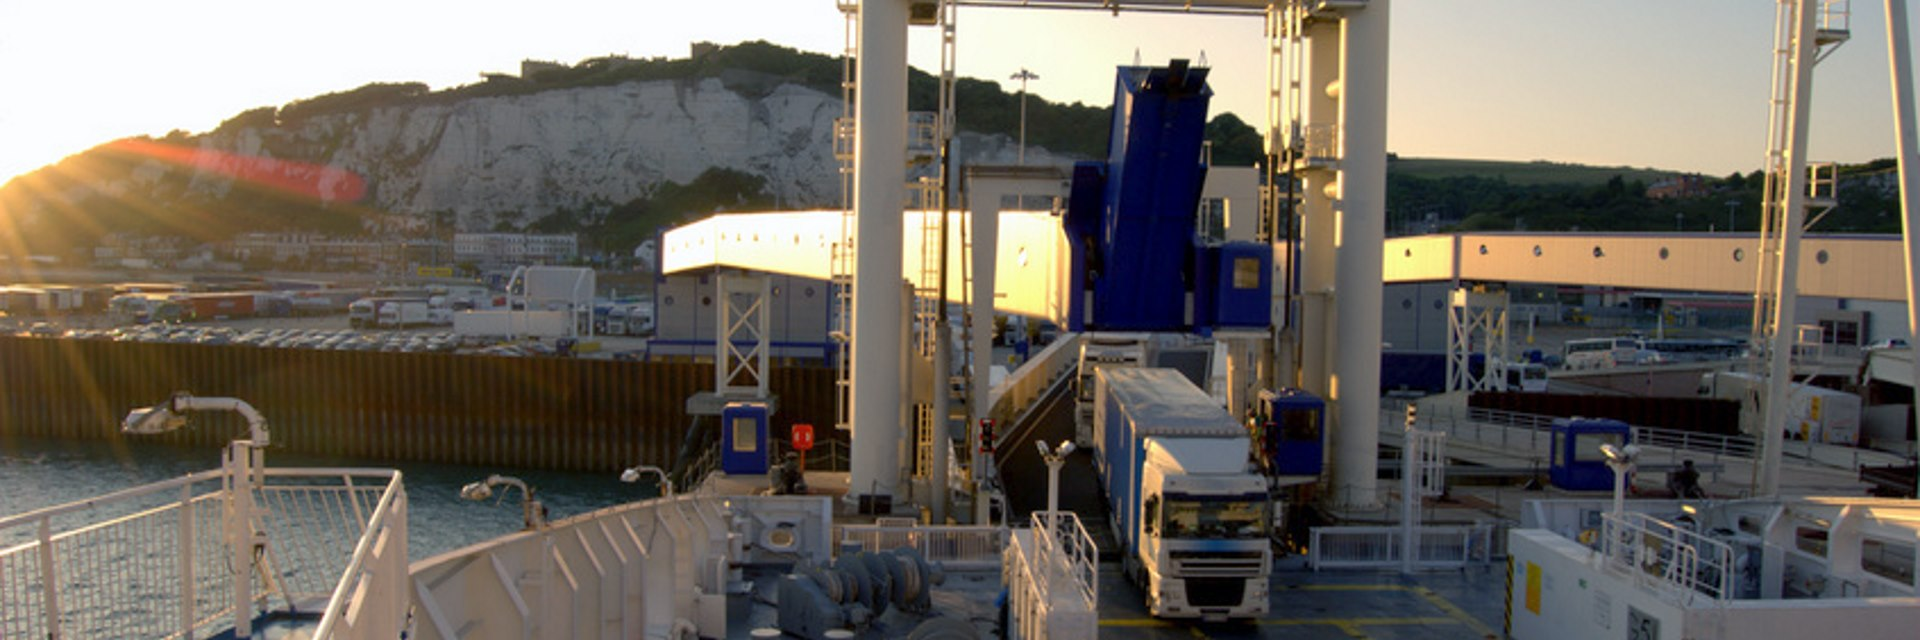 European Pallet Services - Port of Dover Trailer Loading